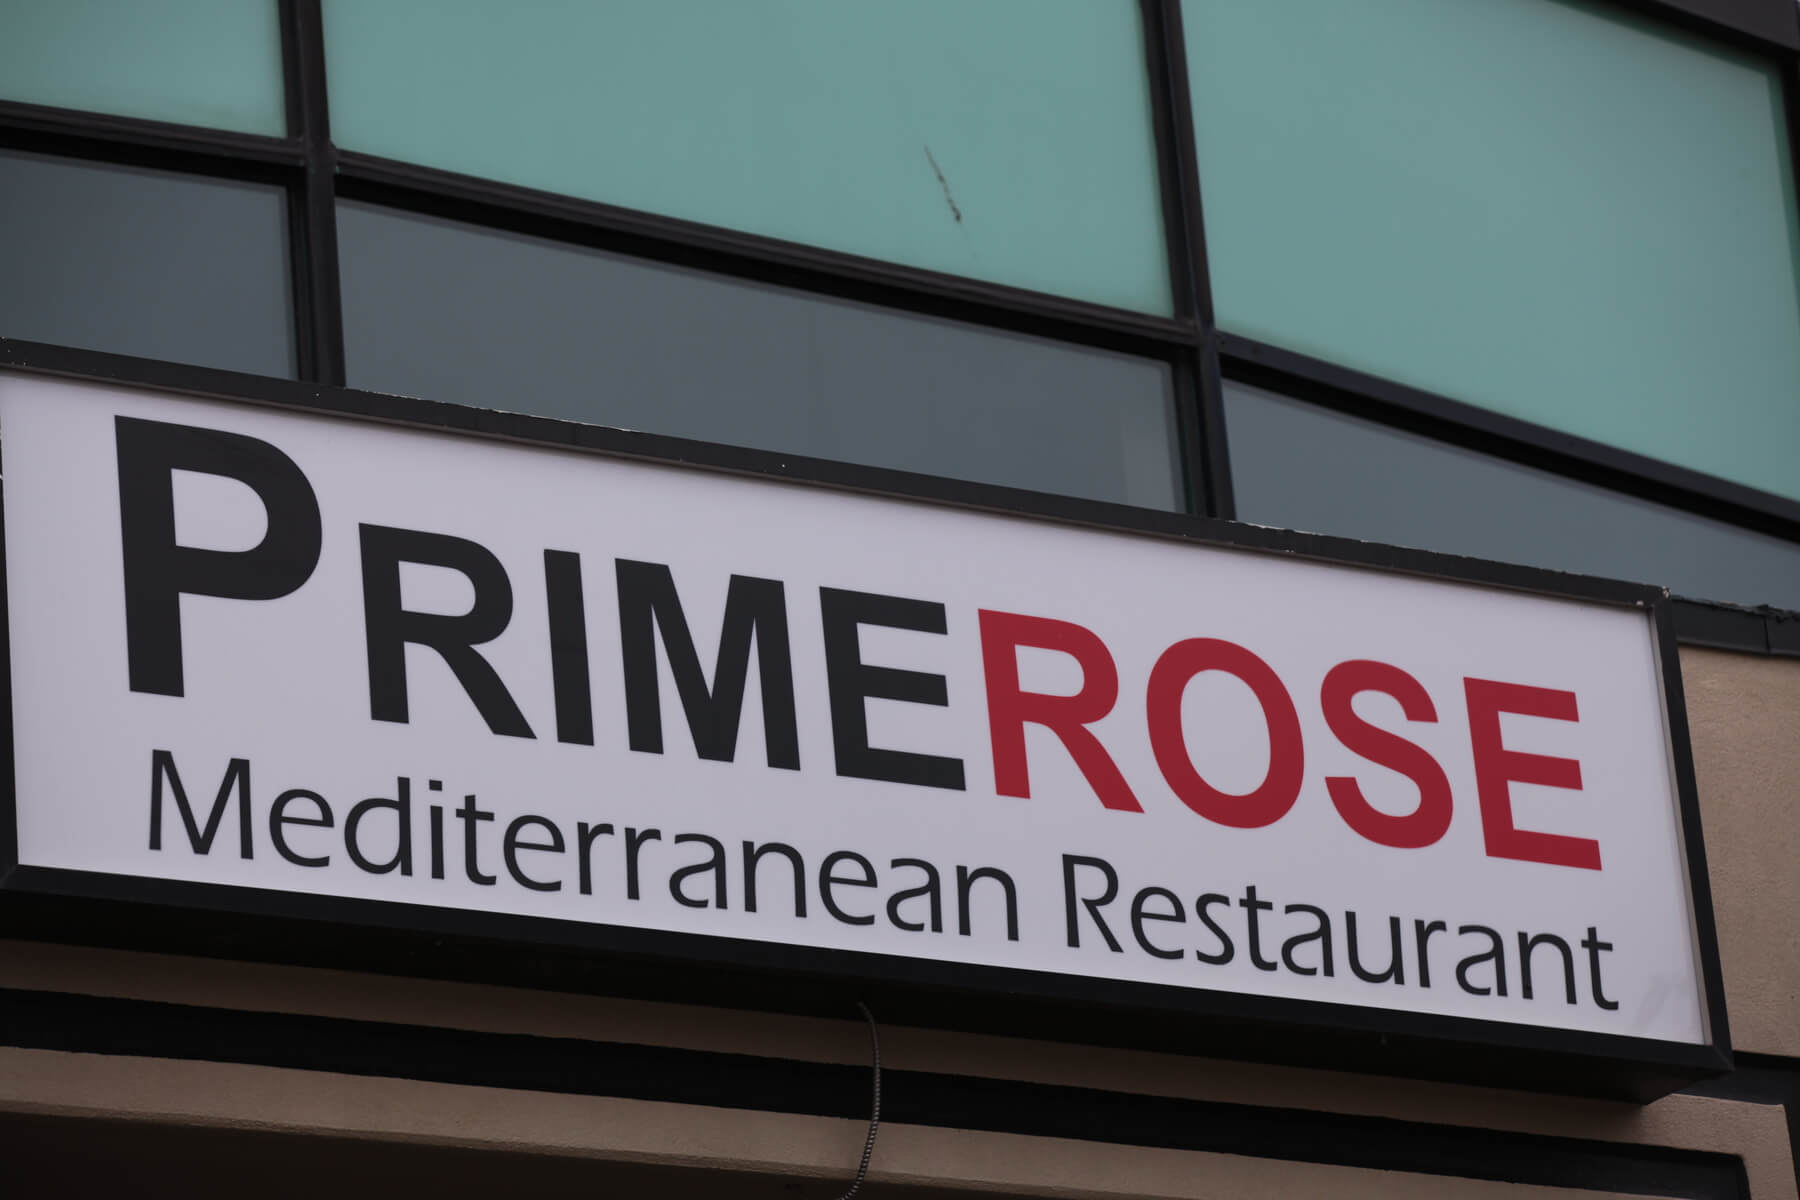 Image shows the Primerose Mediterranean Restuarant sign above the front entrance as seen from teh car park.